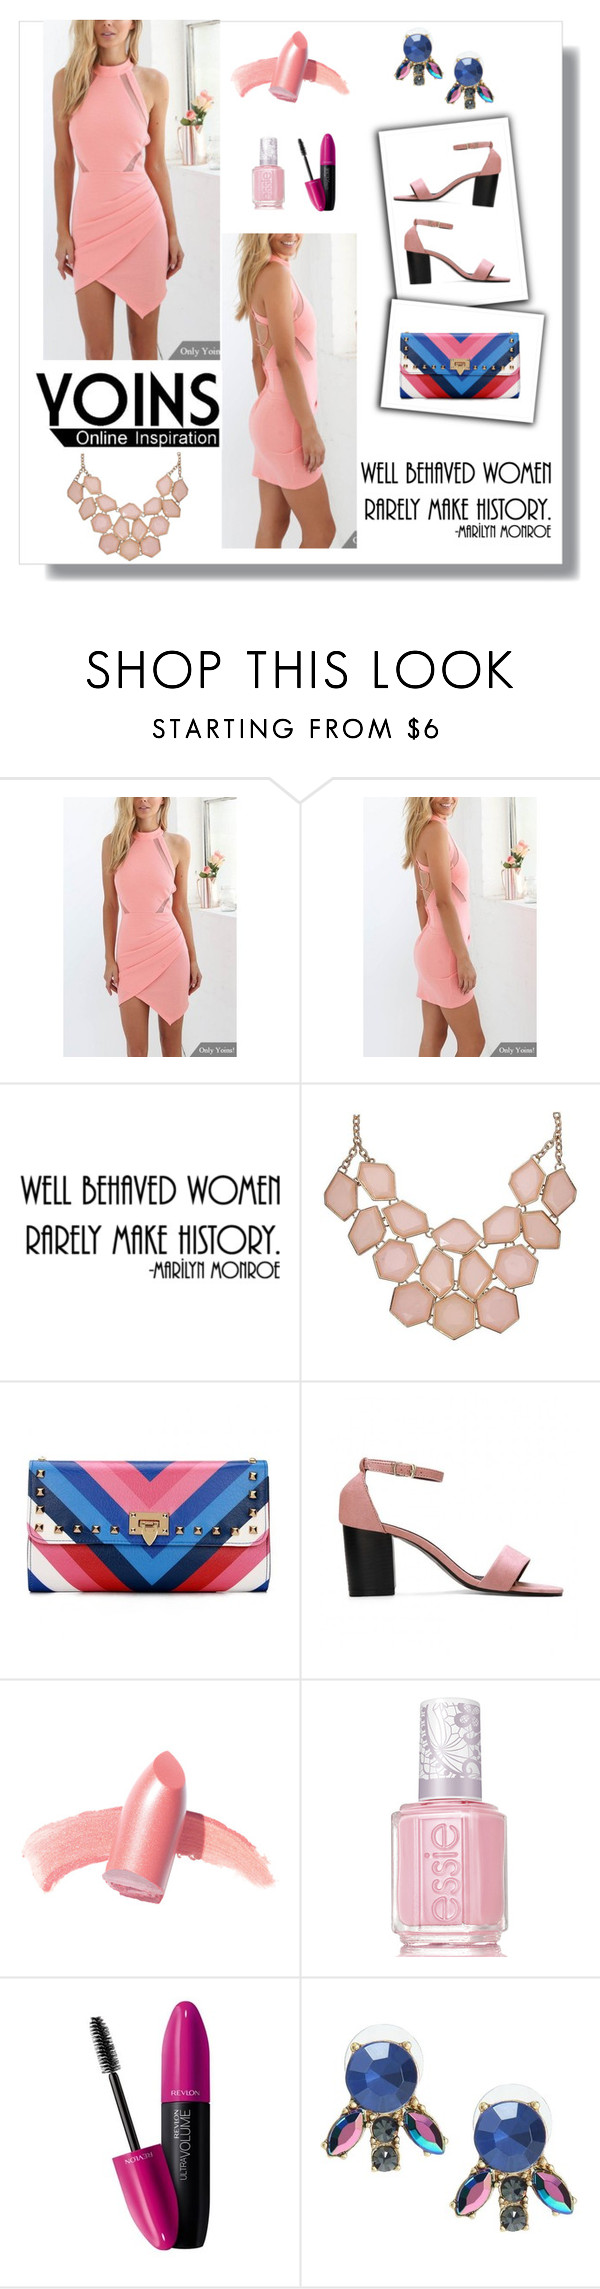 """Yoins Open Back Dress - Yoins Contest"" by helen5526 ❤ liked on Polyvore featuring Elizabeth Arden, Essie, Revlon and yoins"